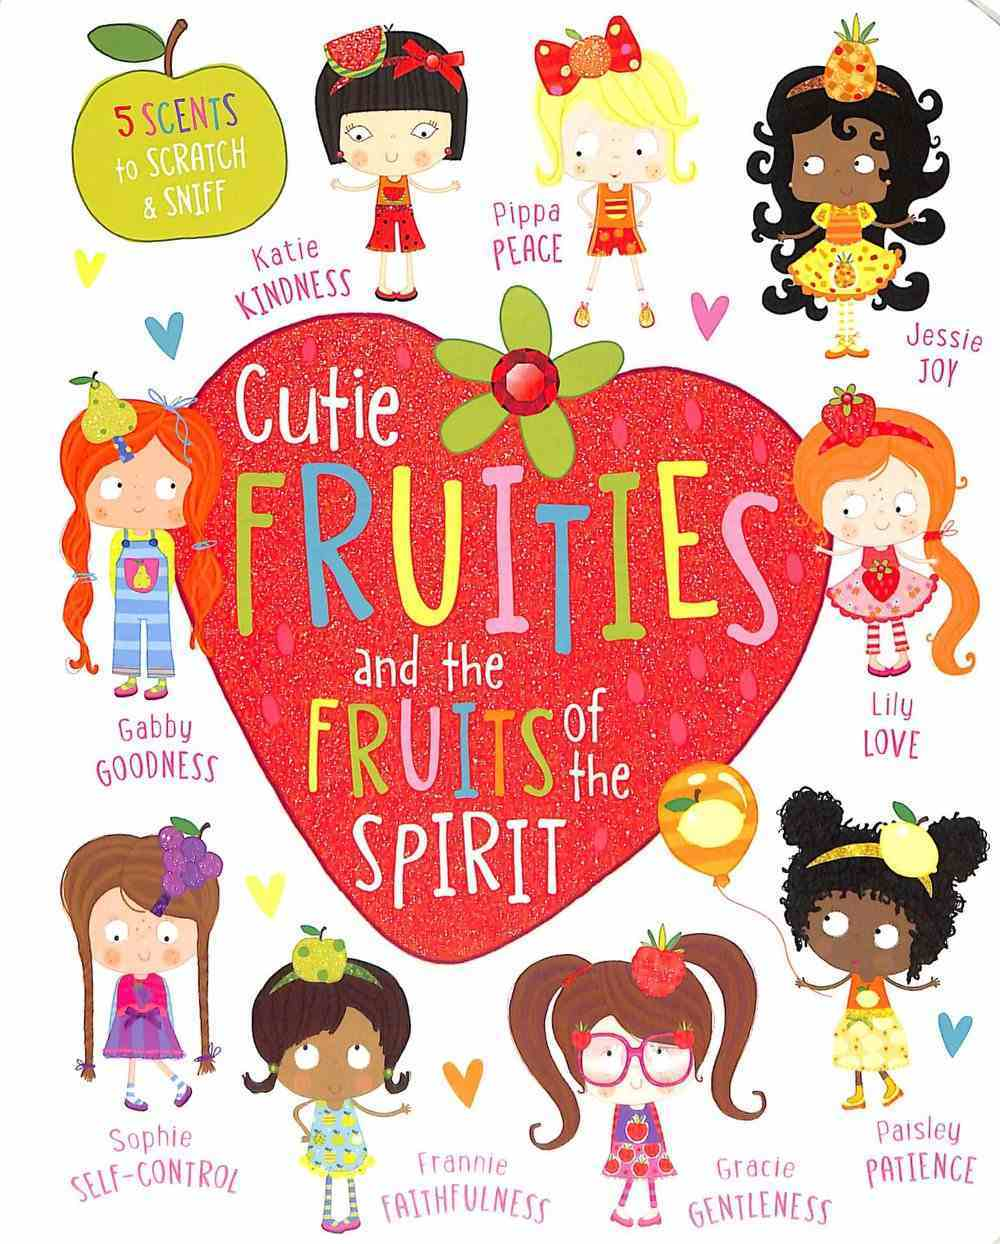 Cutie Fruities: Scratch'n'sniff and Glitter! (My Baby Is Series) Board Book